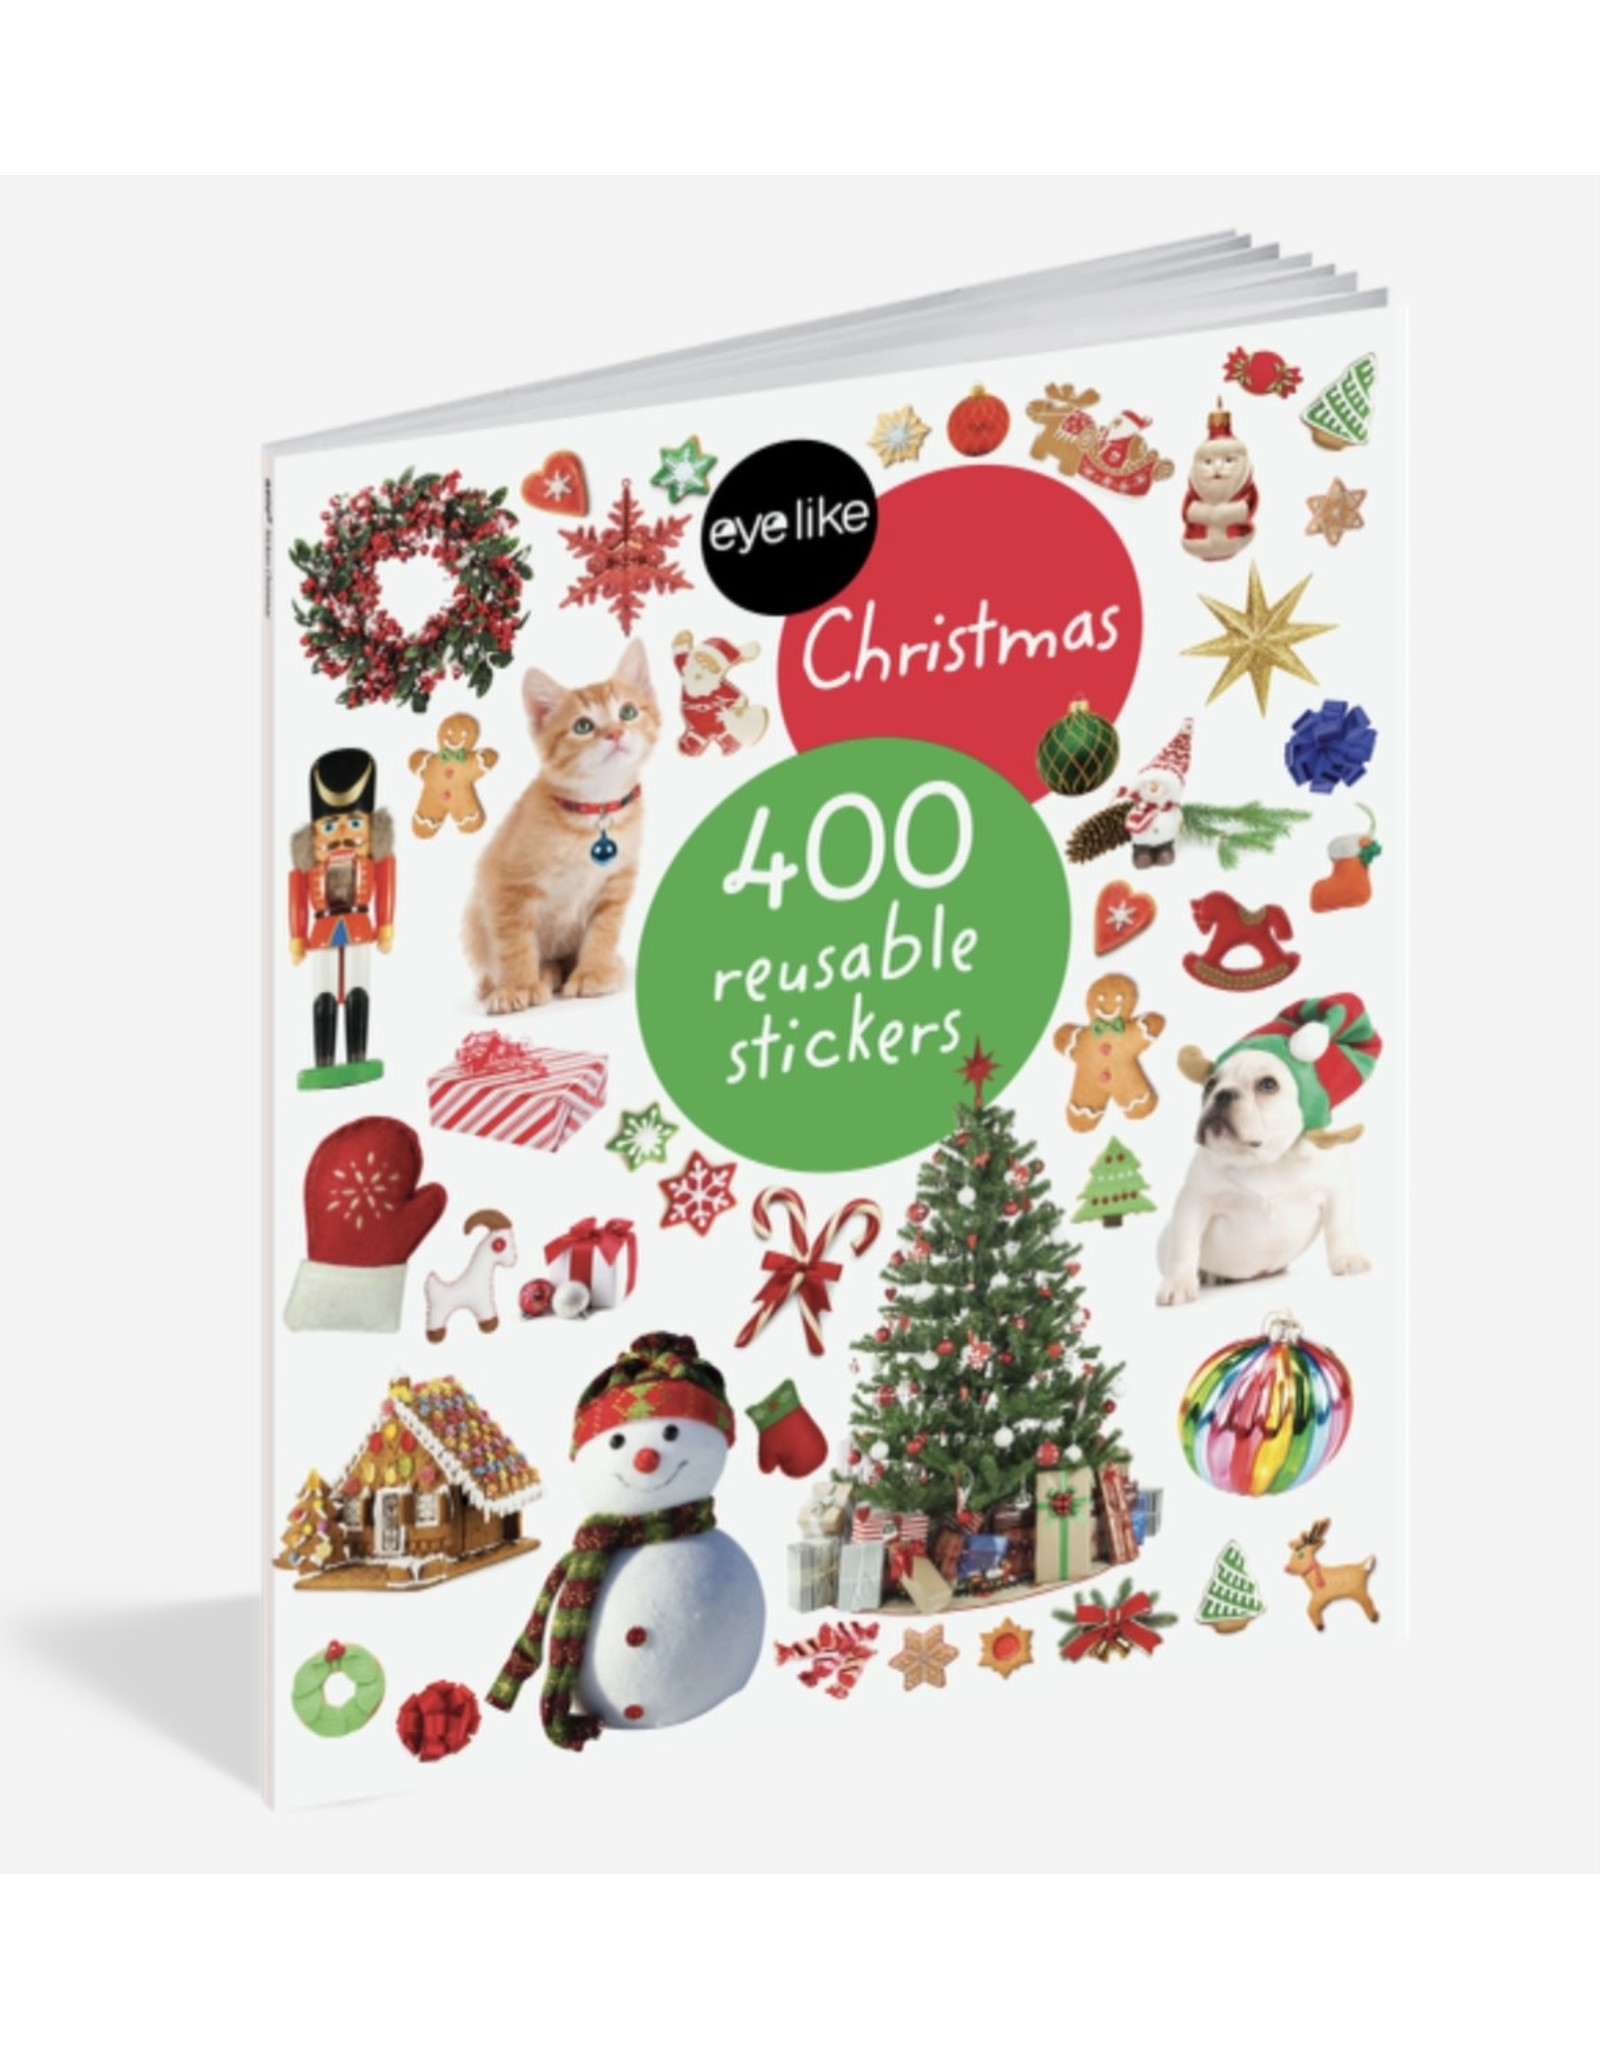 eye like Christmas 400 Reusable stickers